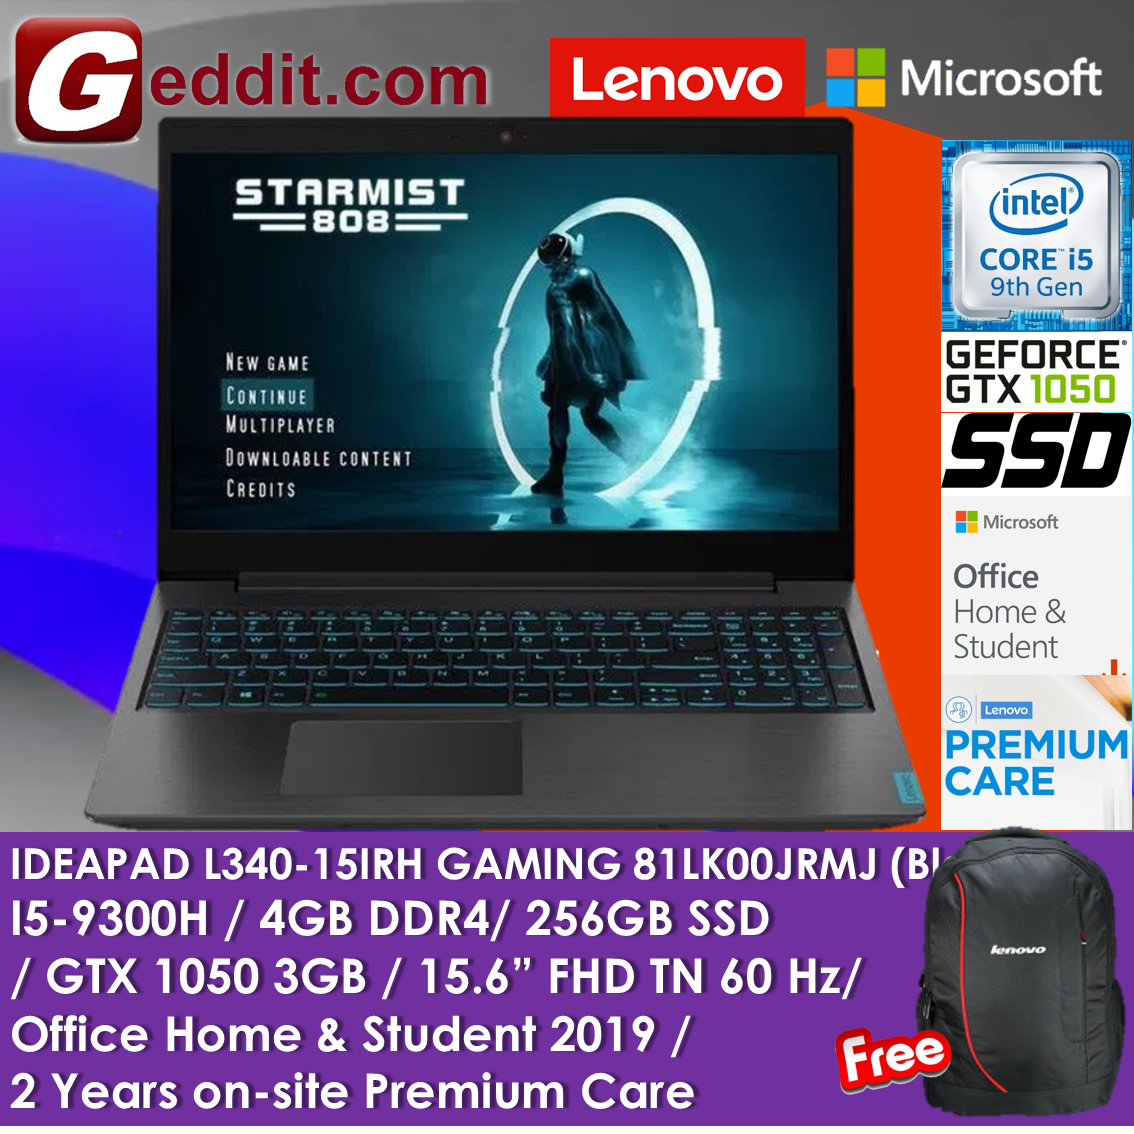 LENOVO GAMING LAPTOP L340-15IRH 81LK00JRMJ (i5-9300H,4GB,256GB SSD,15.6  FULL-HD TN,GTX1050 3GB,WIN10,PRE-INSTALLED OFFICE H&S) FREE LENOVO  BACKPACK Malaysia